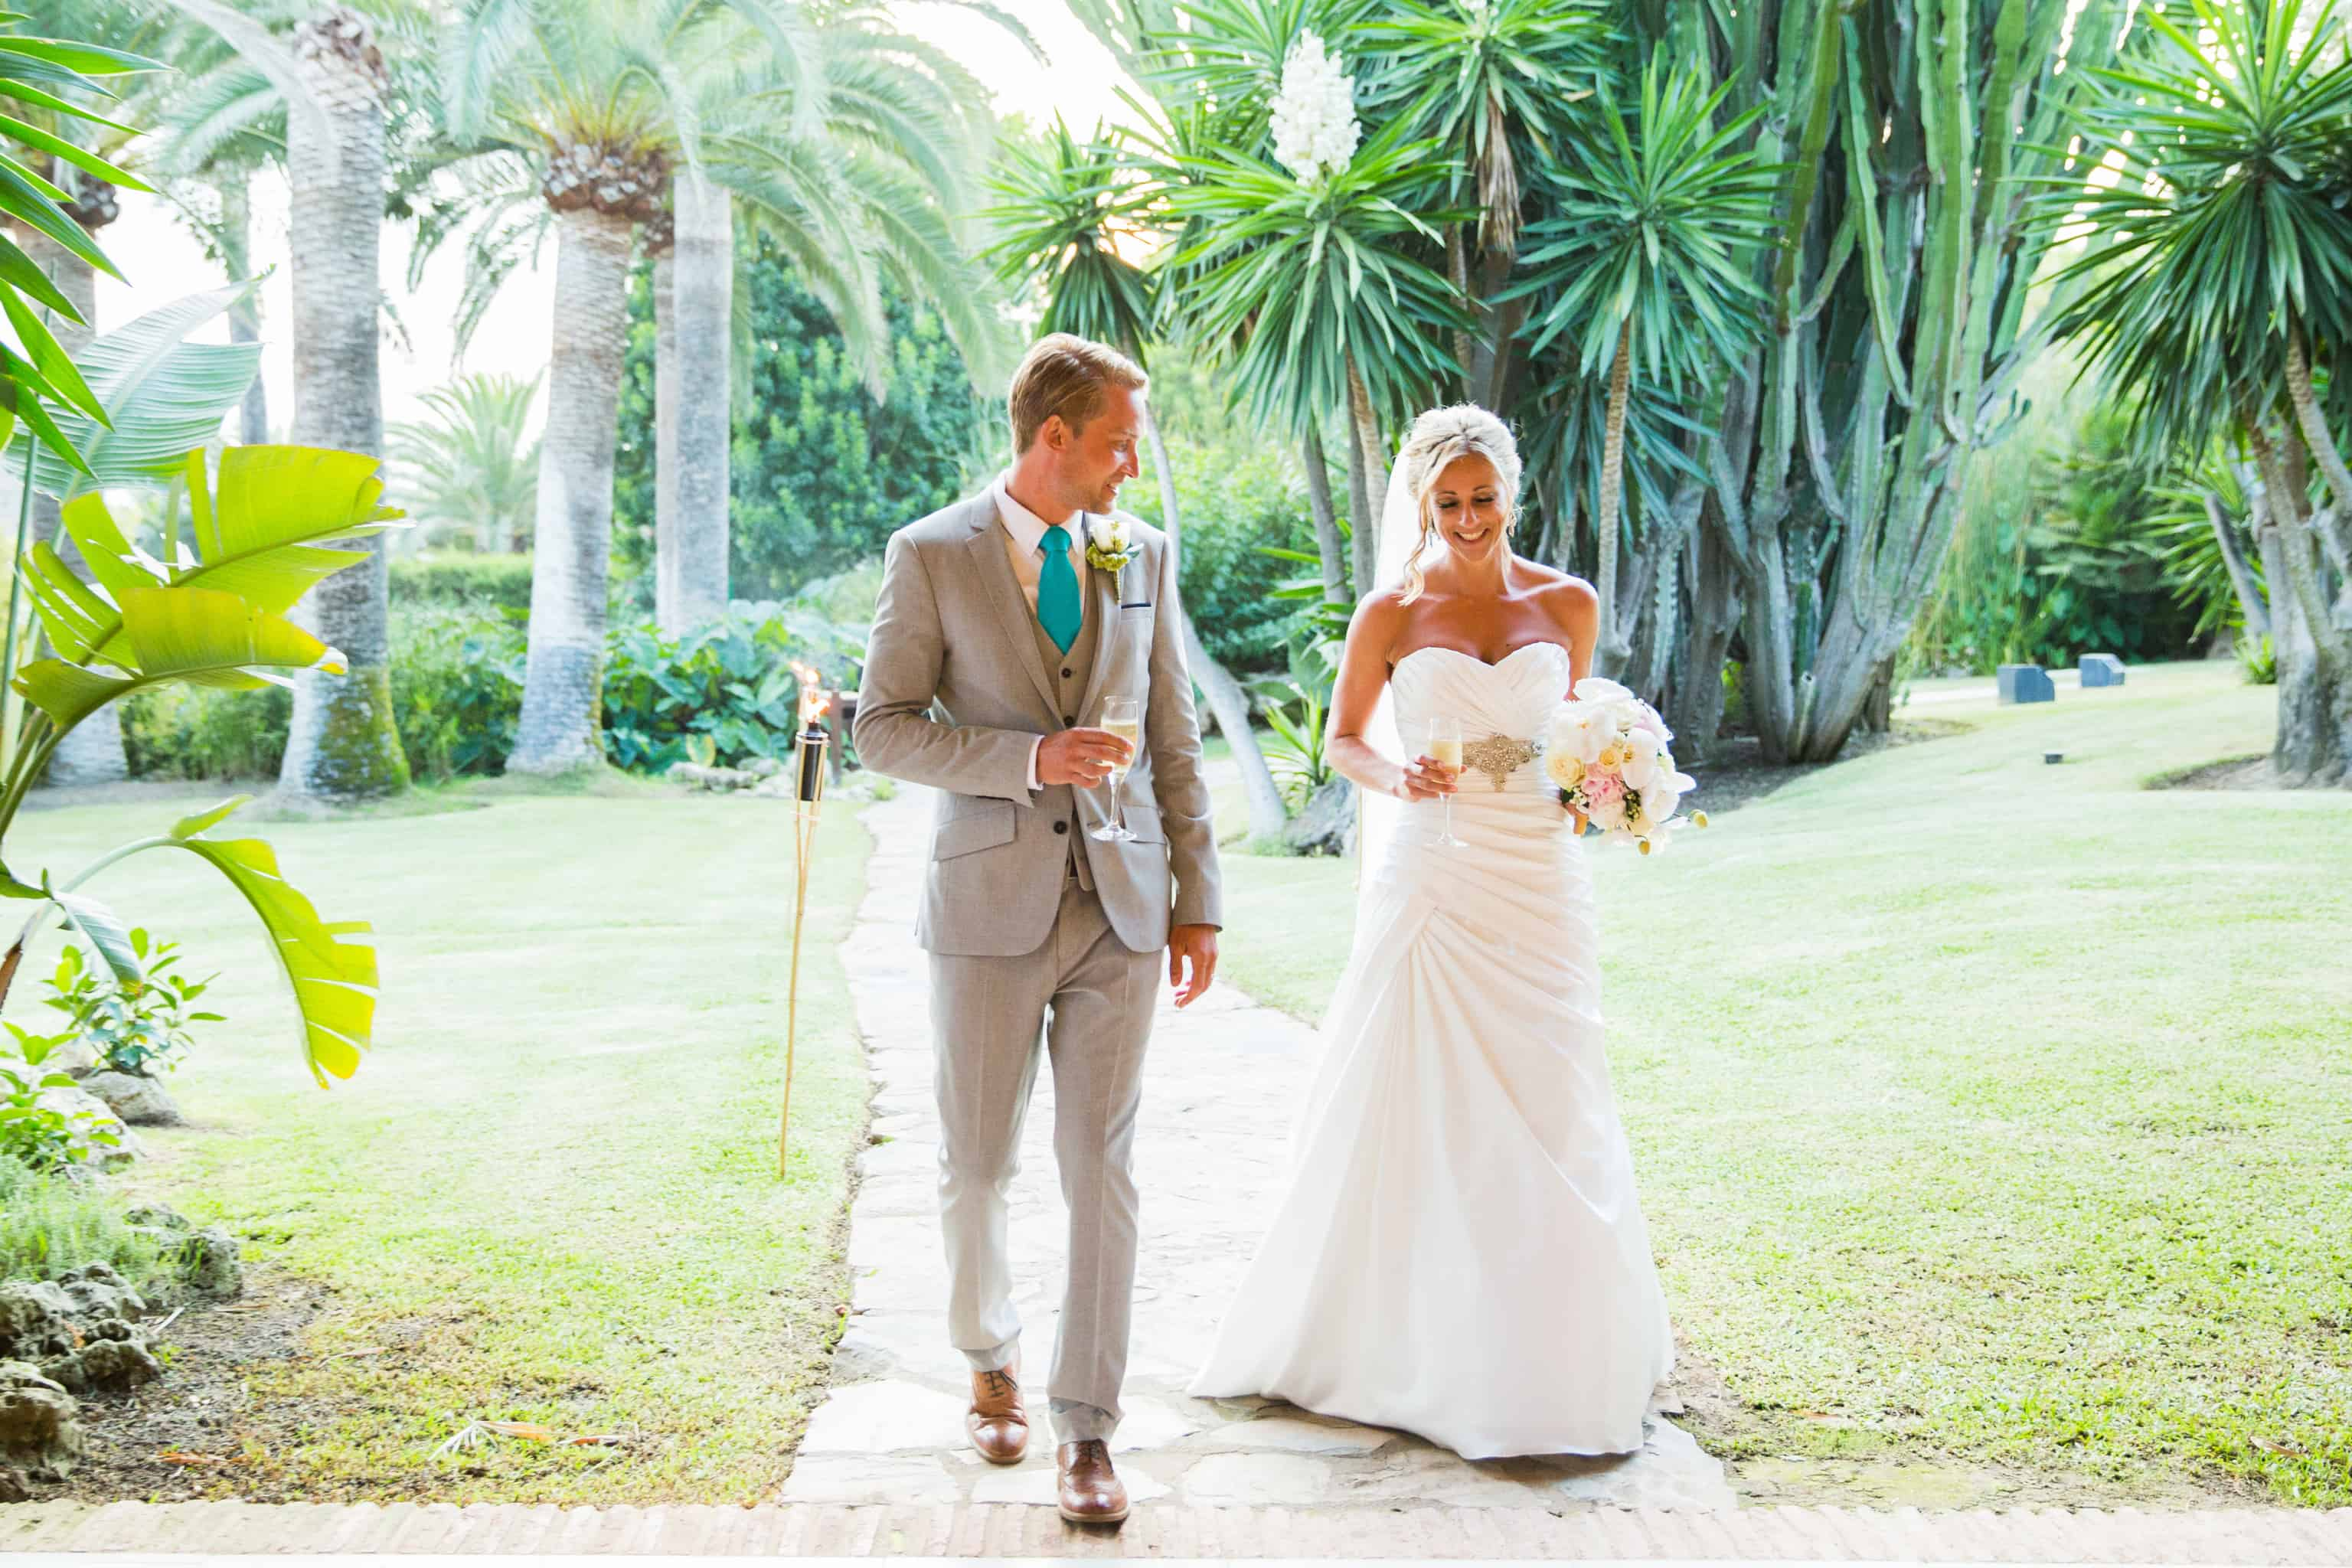 A Tropical Paradise backdrop for the Bride and groom at their Marbella Wedding